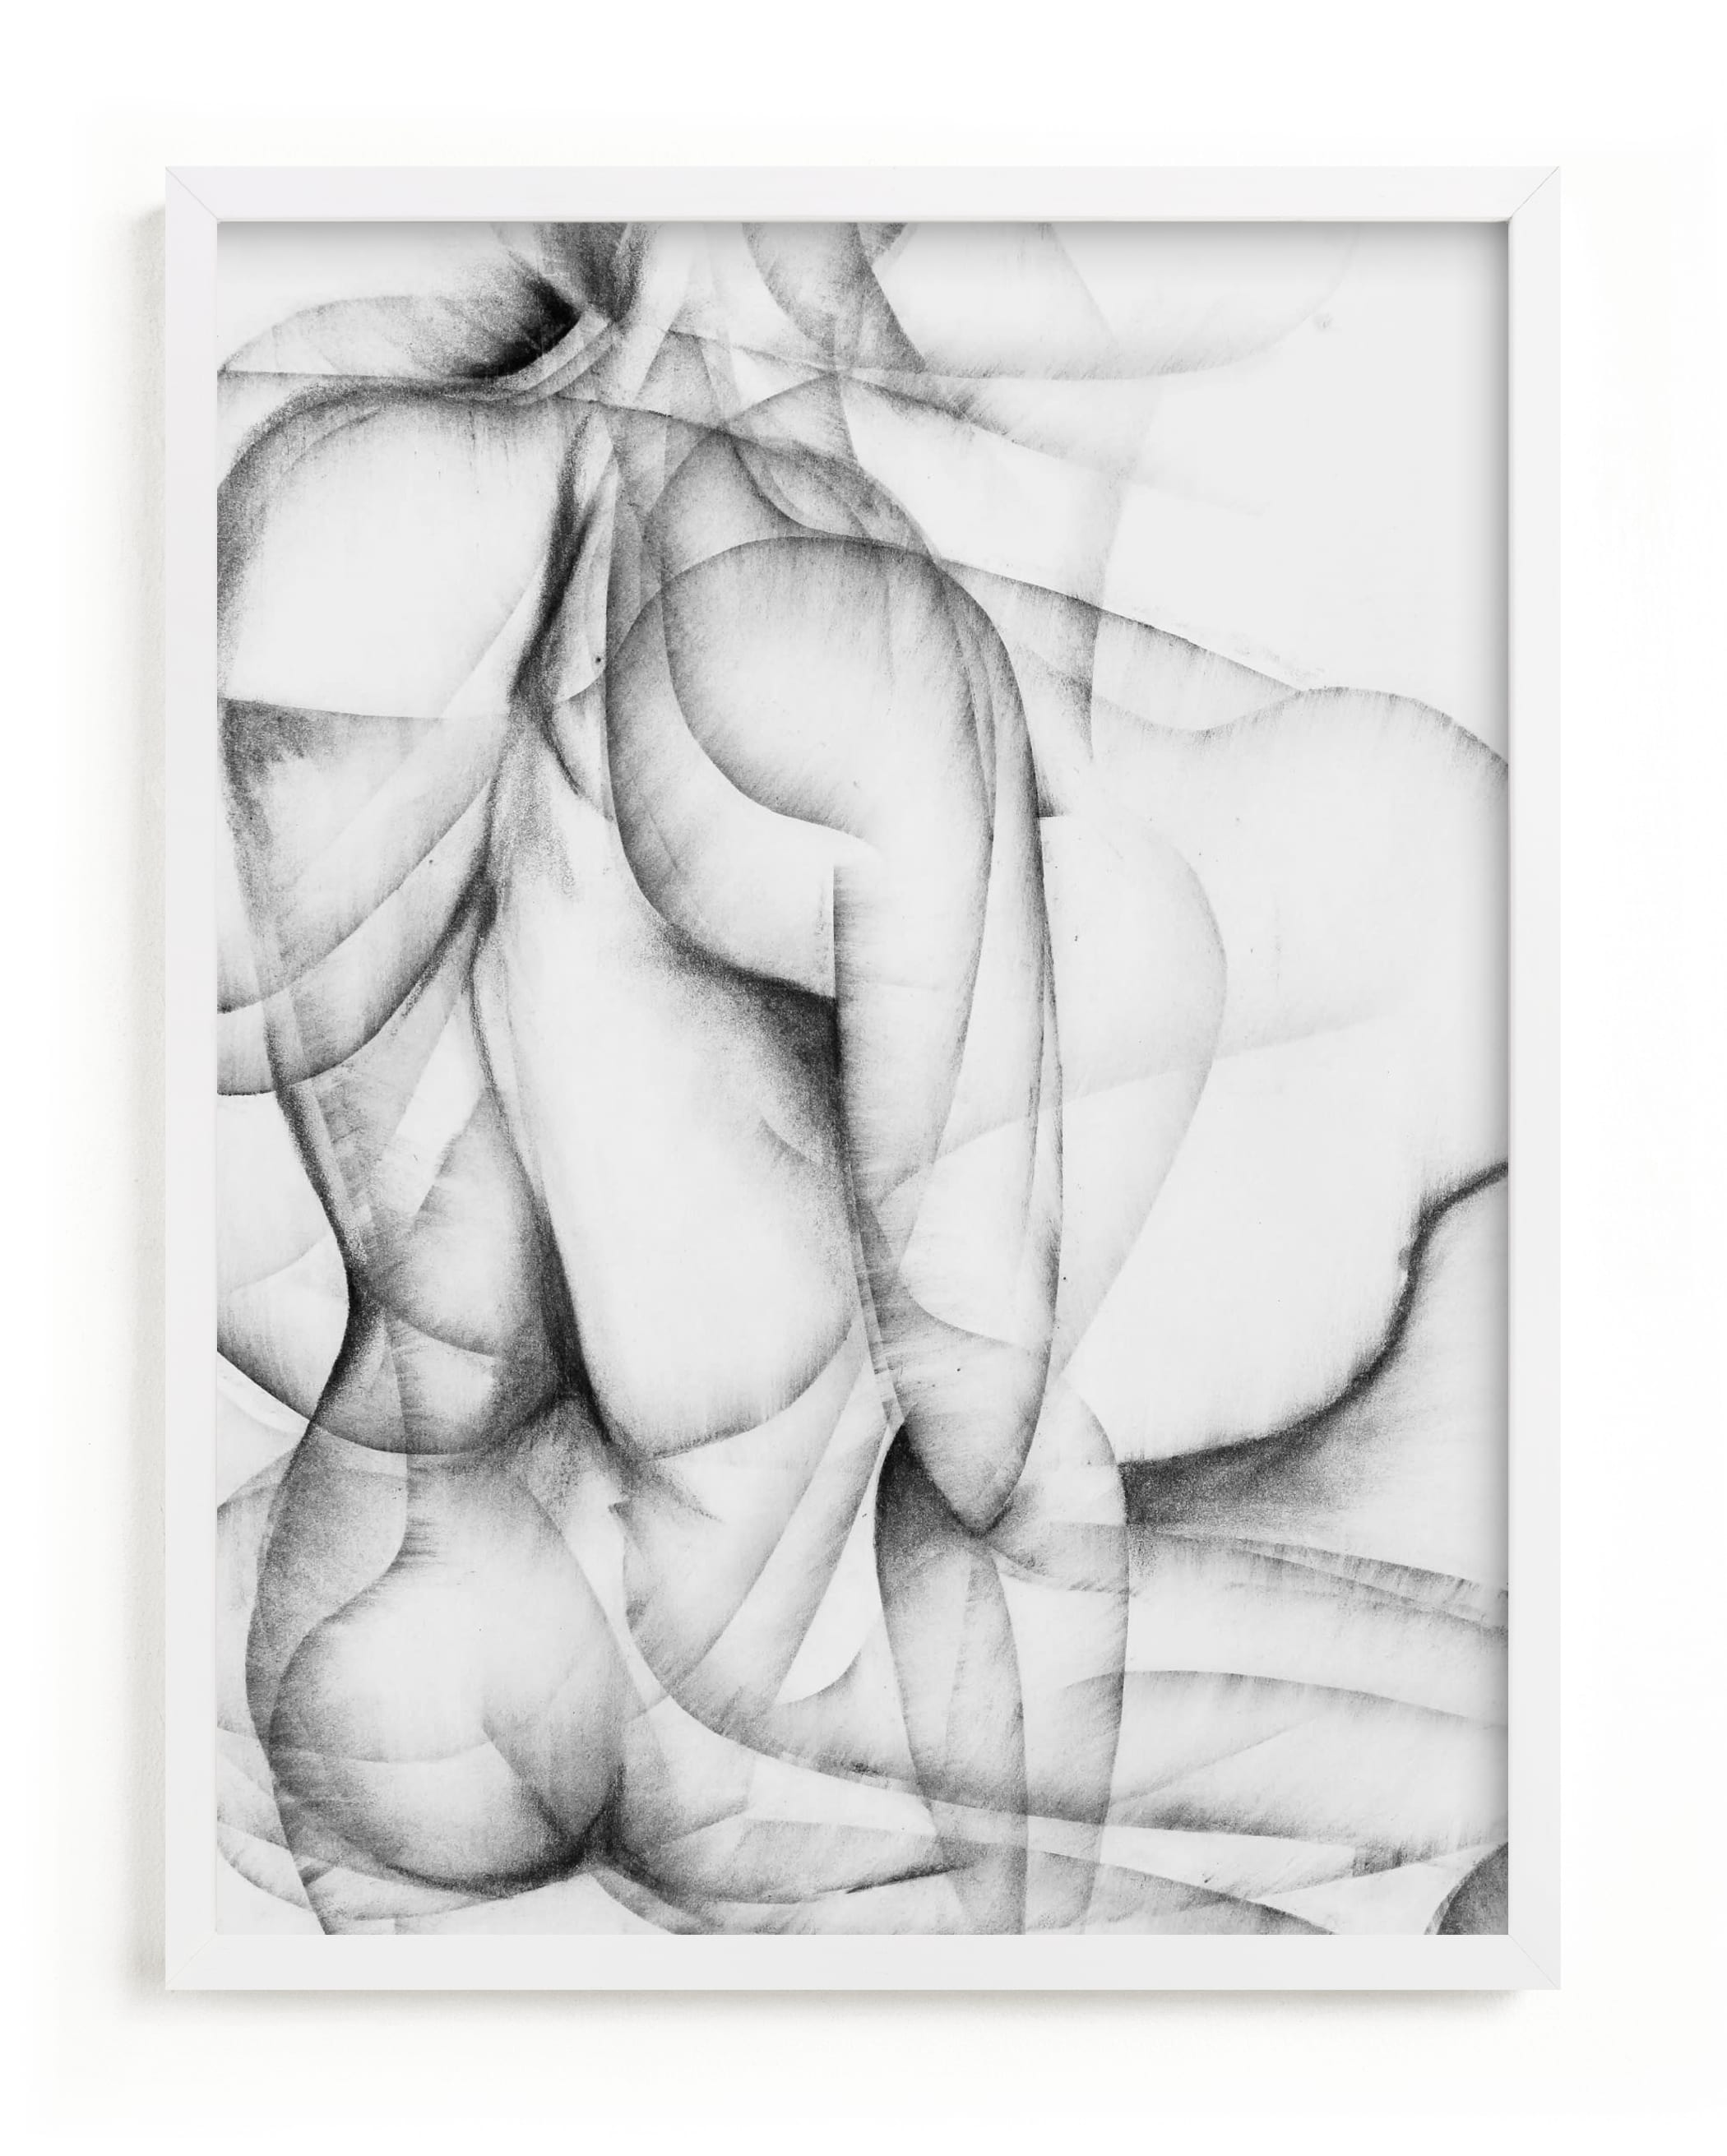 This is a black and white art by Karen Kaul called More Alike than Not.